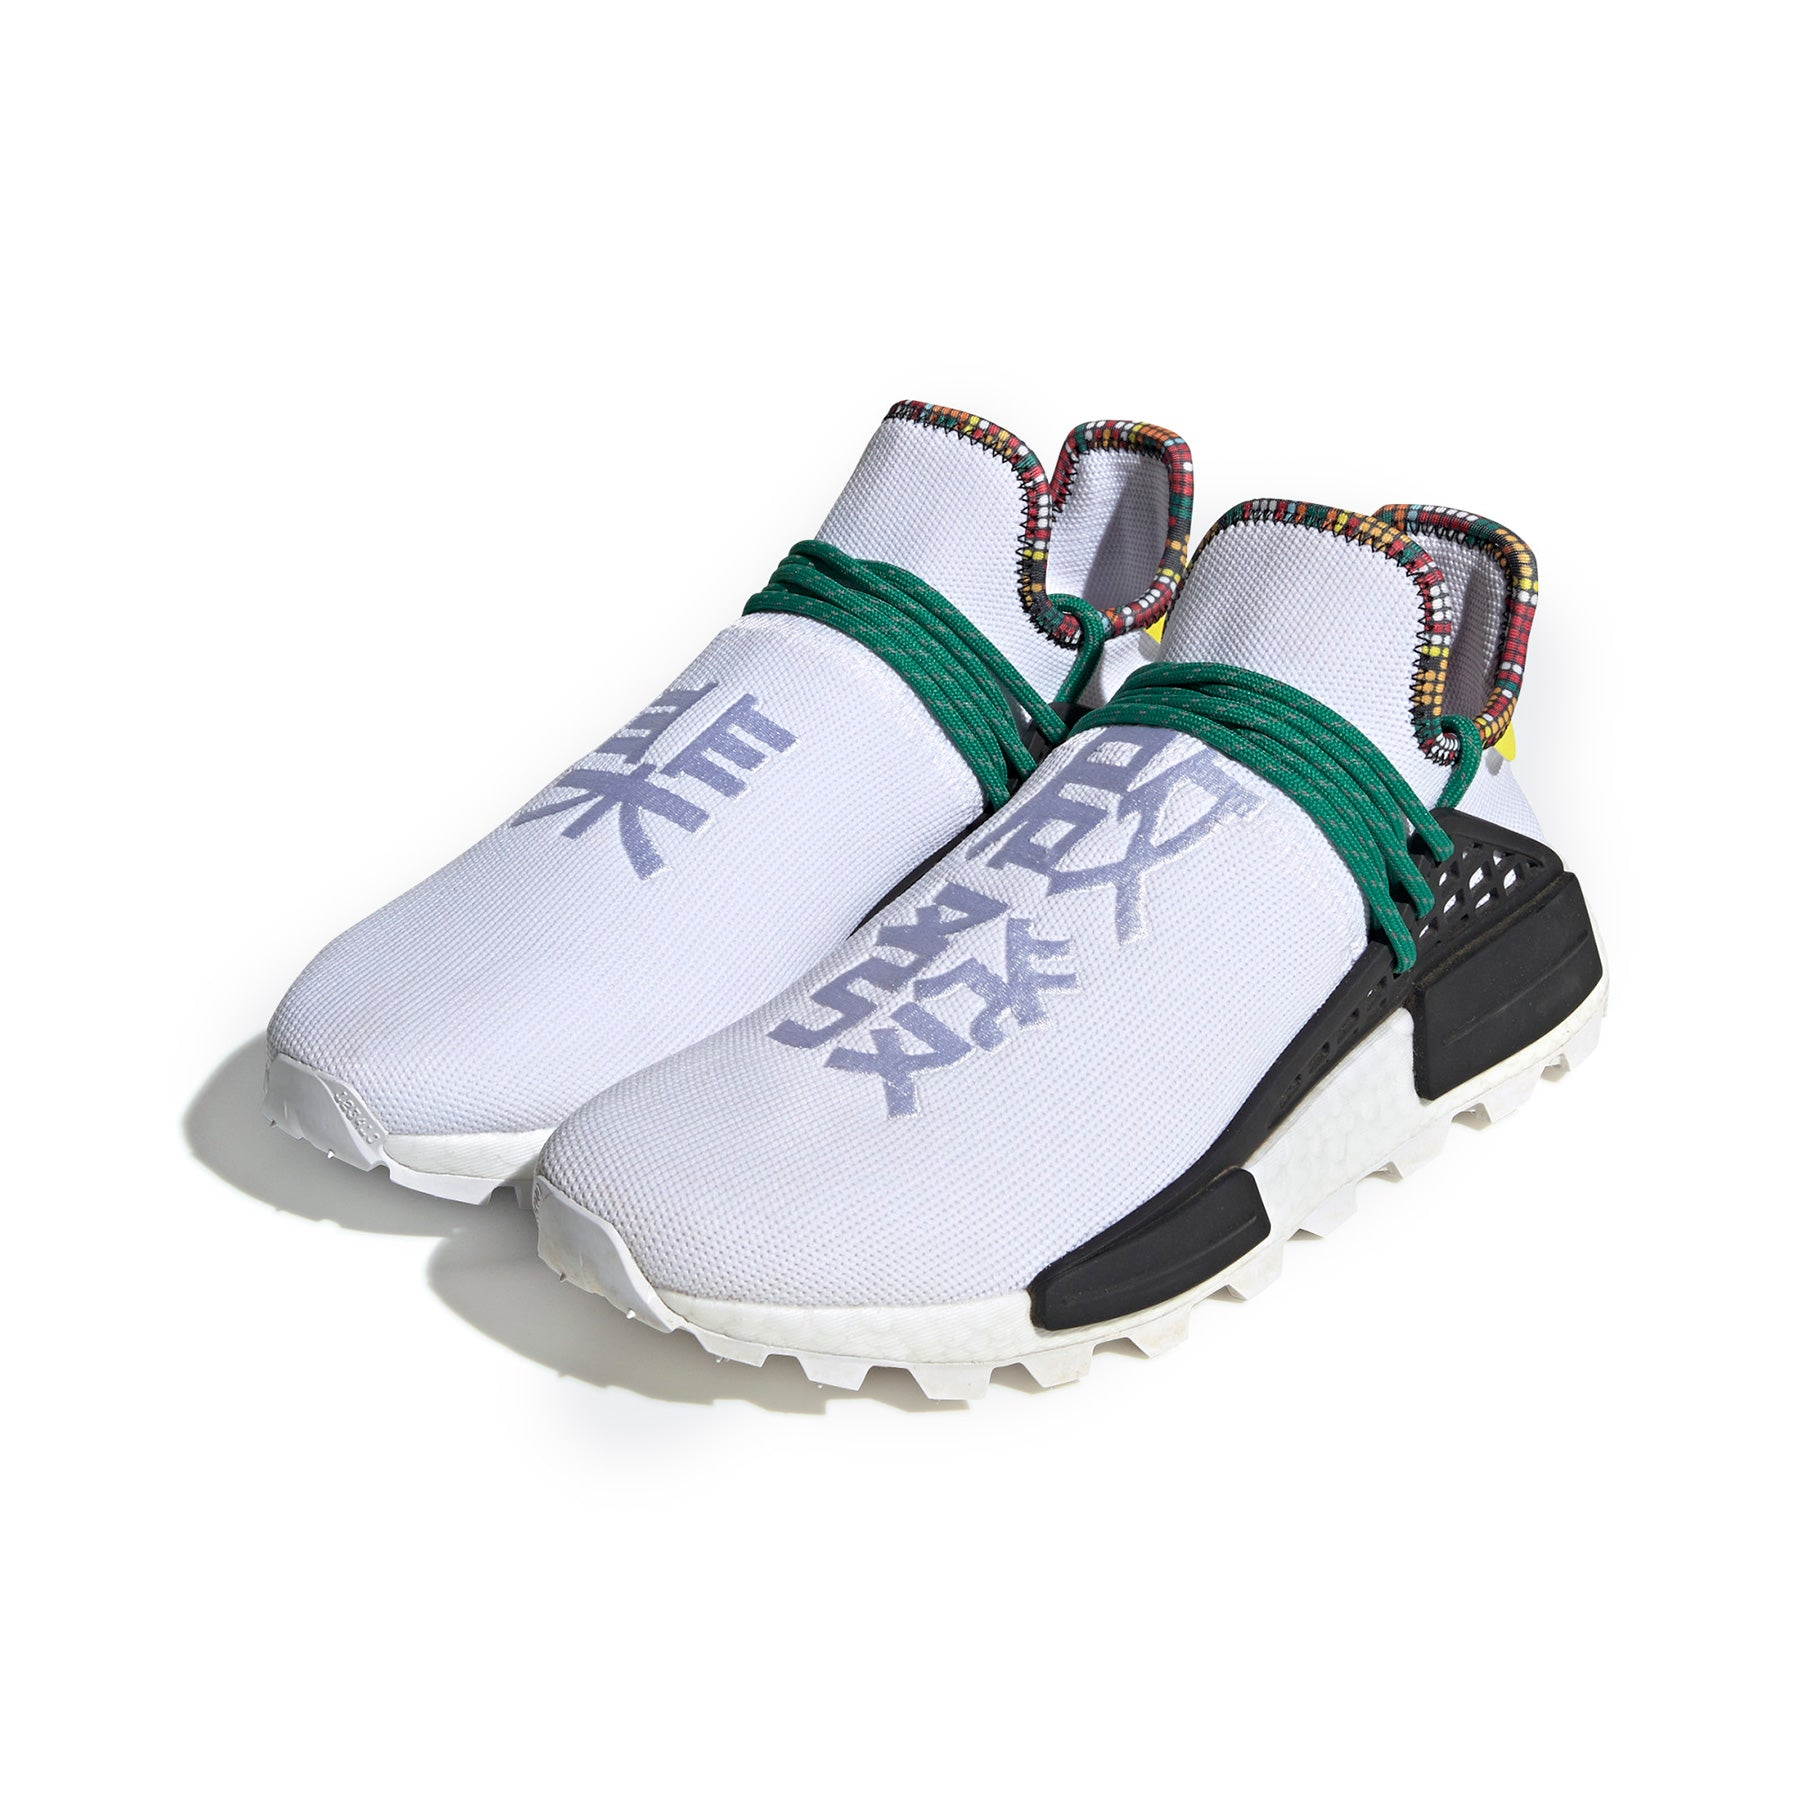 new products 06060 f66b3 Human Race White Green Gastronomia Y Viajes